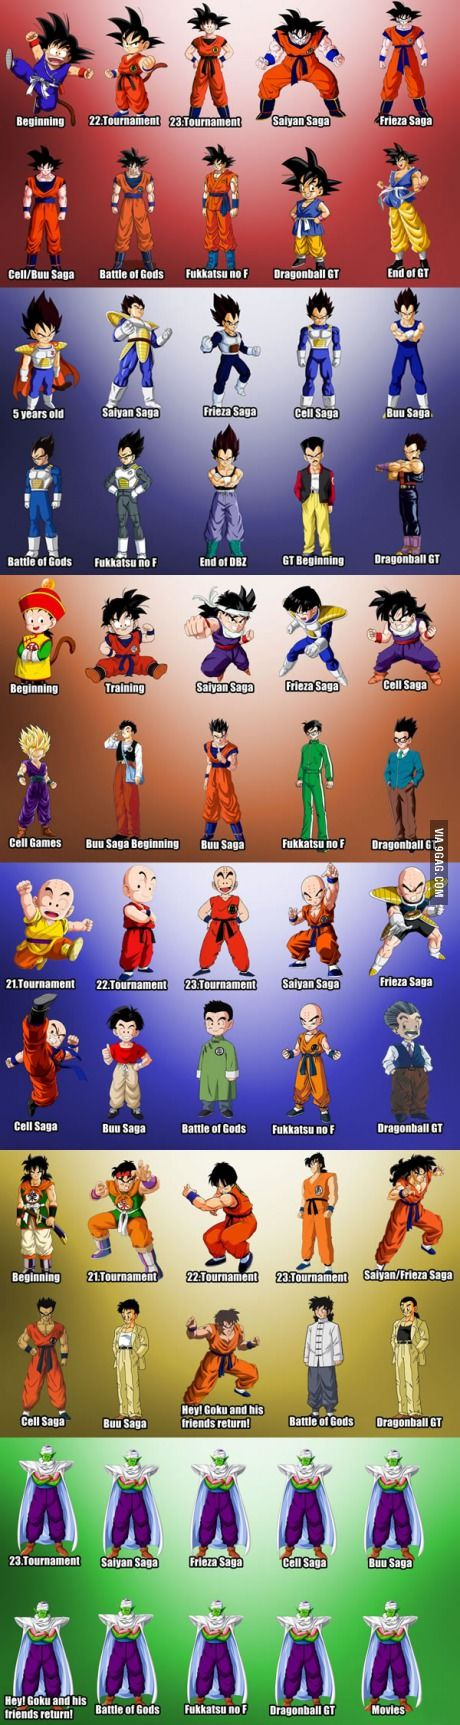 The Evolution Of Dragon Ball Characters  pablo lopez jr